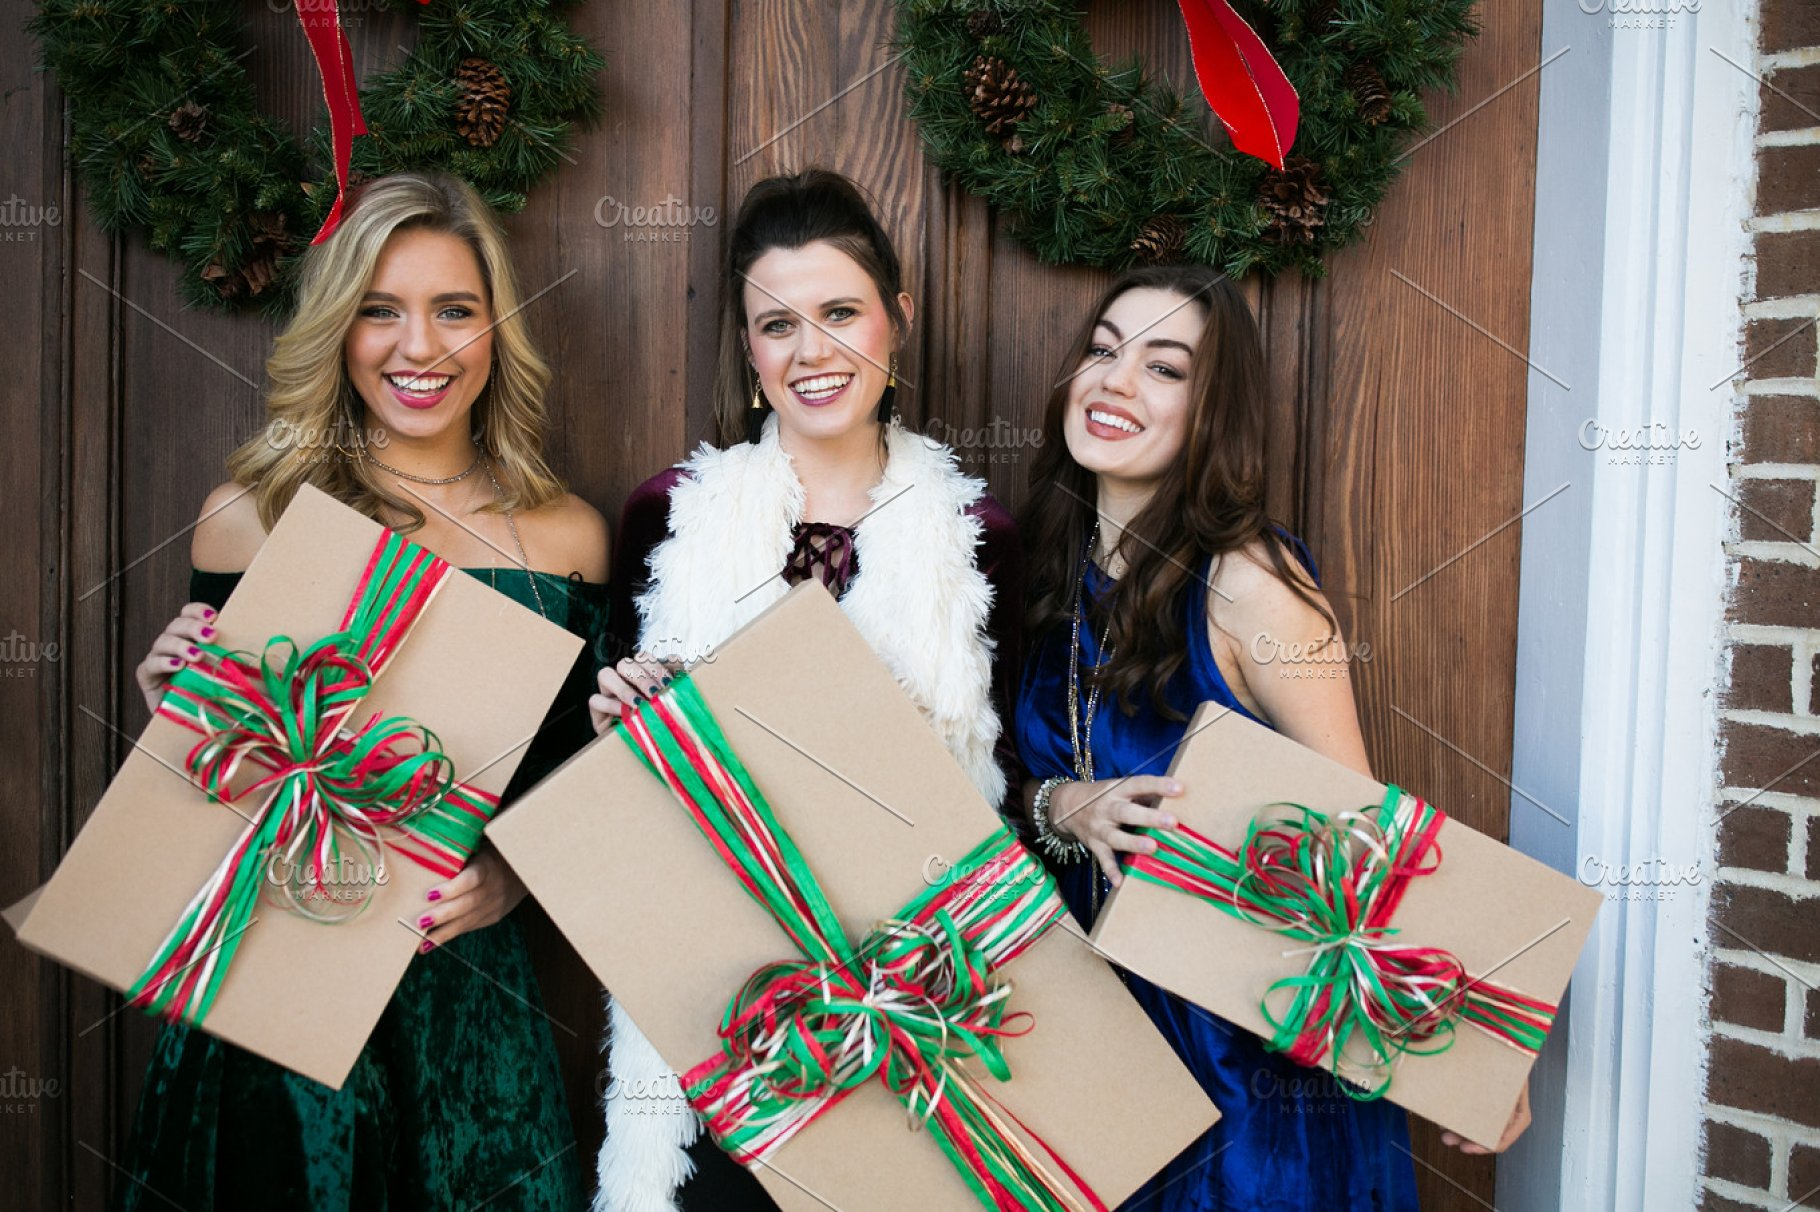 Friends Holding Christmas Presents High Quality Stock Photos